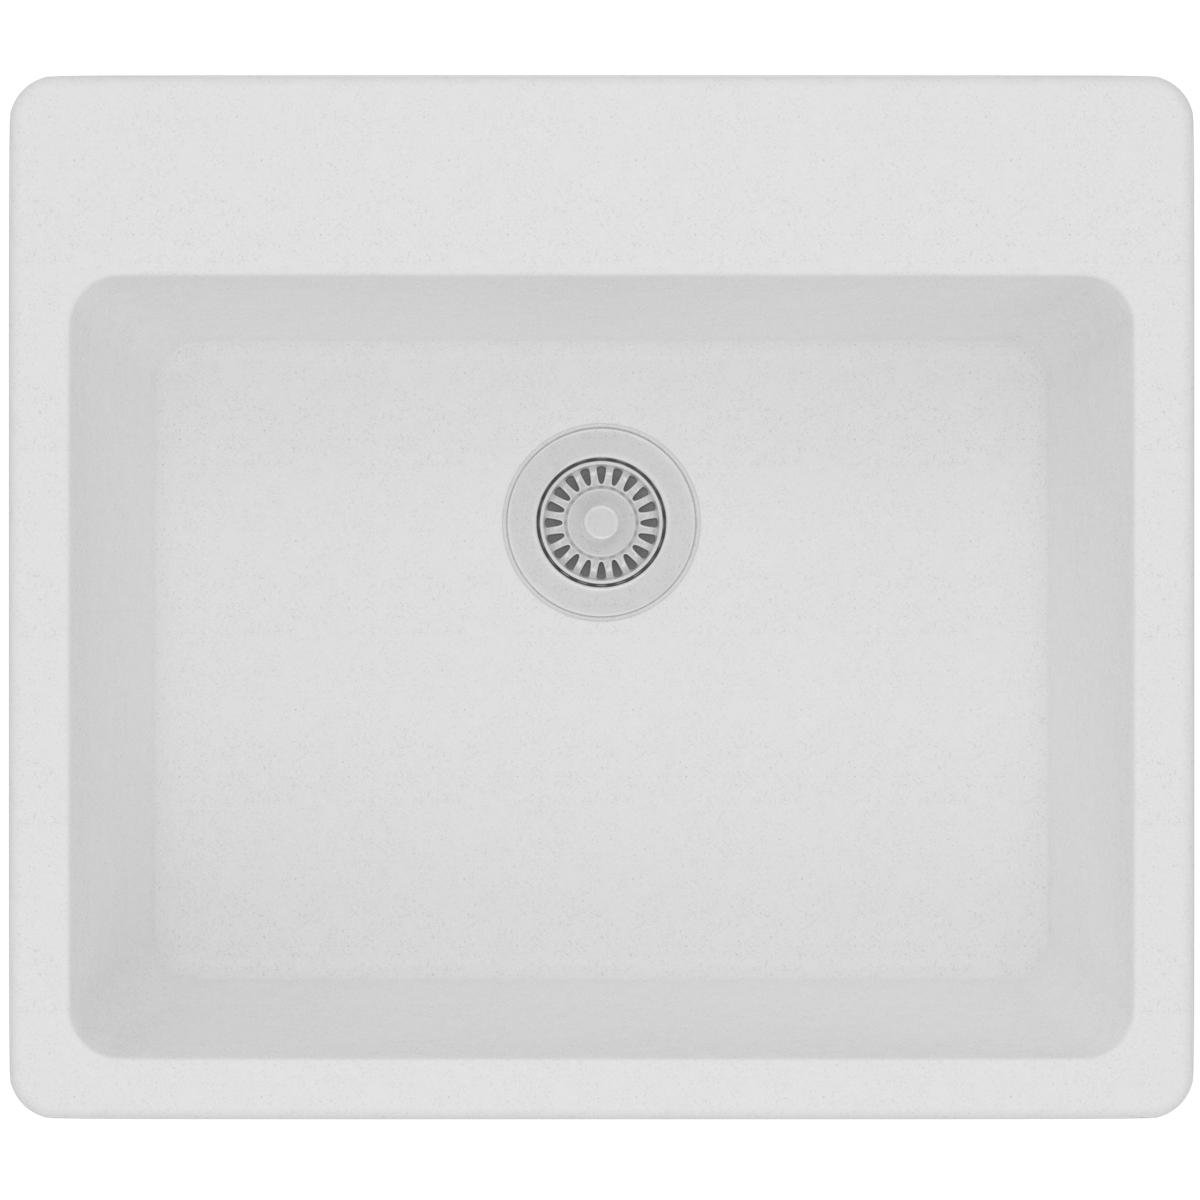 Elkay Quartz Classic ELG2522WH0 White Single Bowl Top Mount Sink